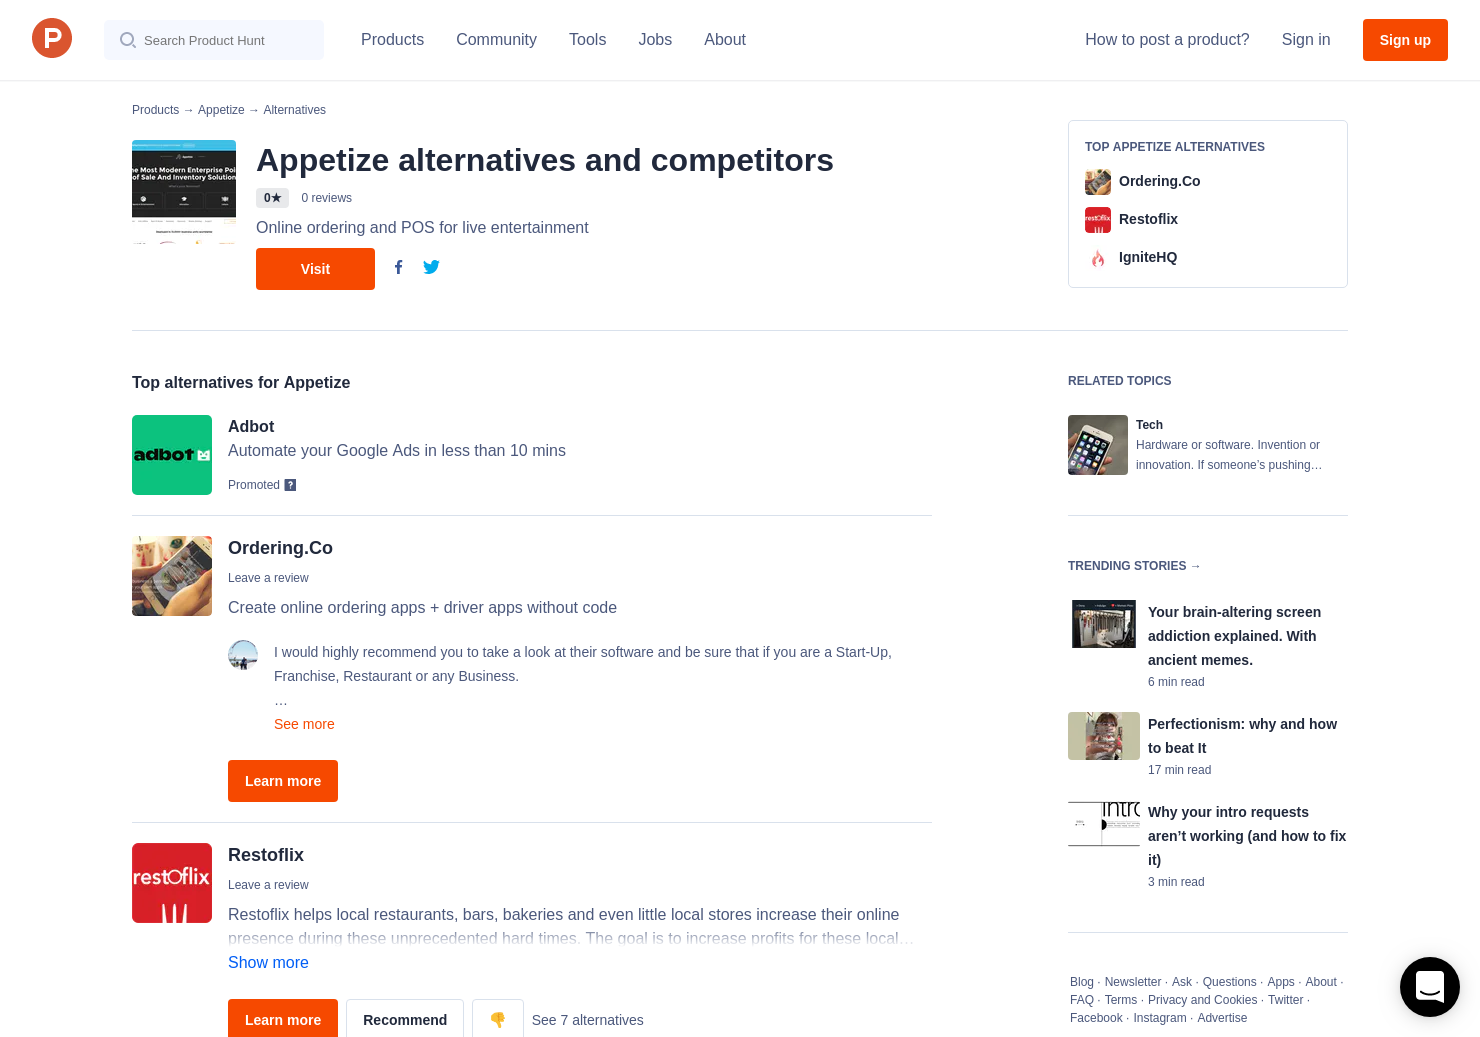 3 Alternatives to Appetize | Product Hunt